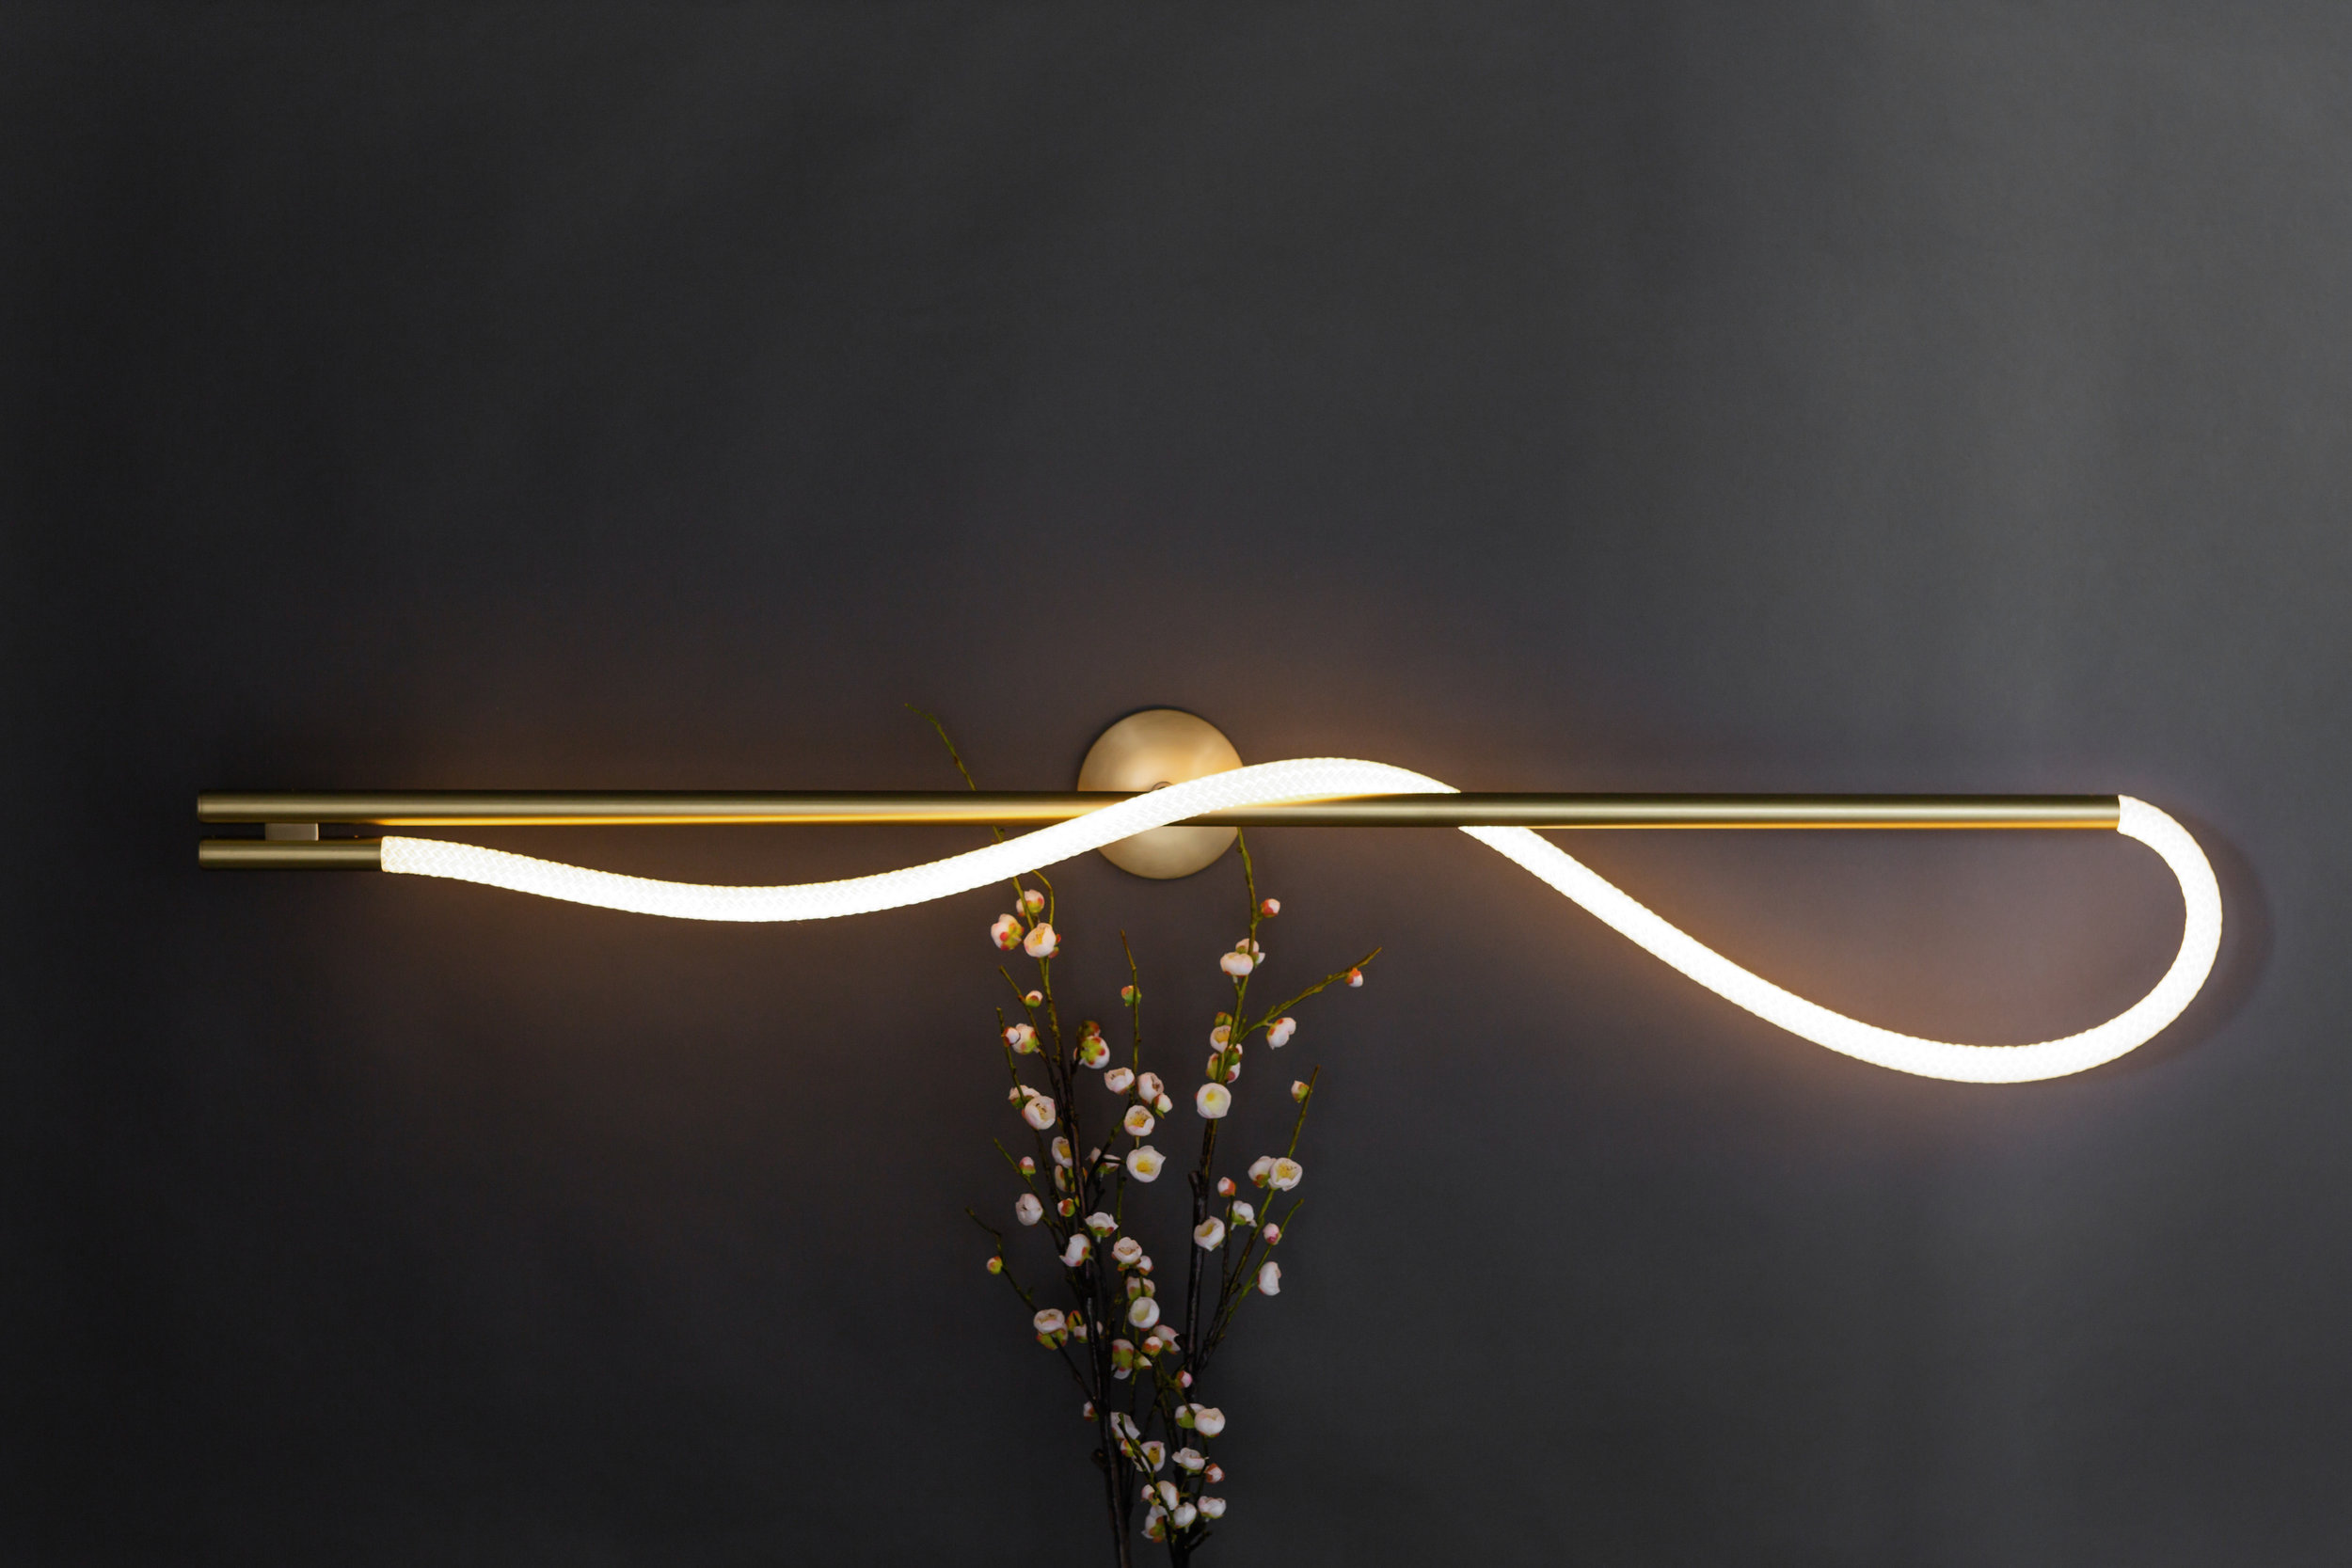 As pictured: 4.5' Surrey Sconce in Satin Brass - Horizontal Orientation